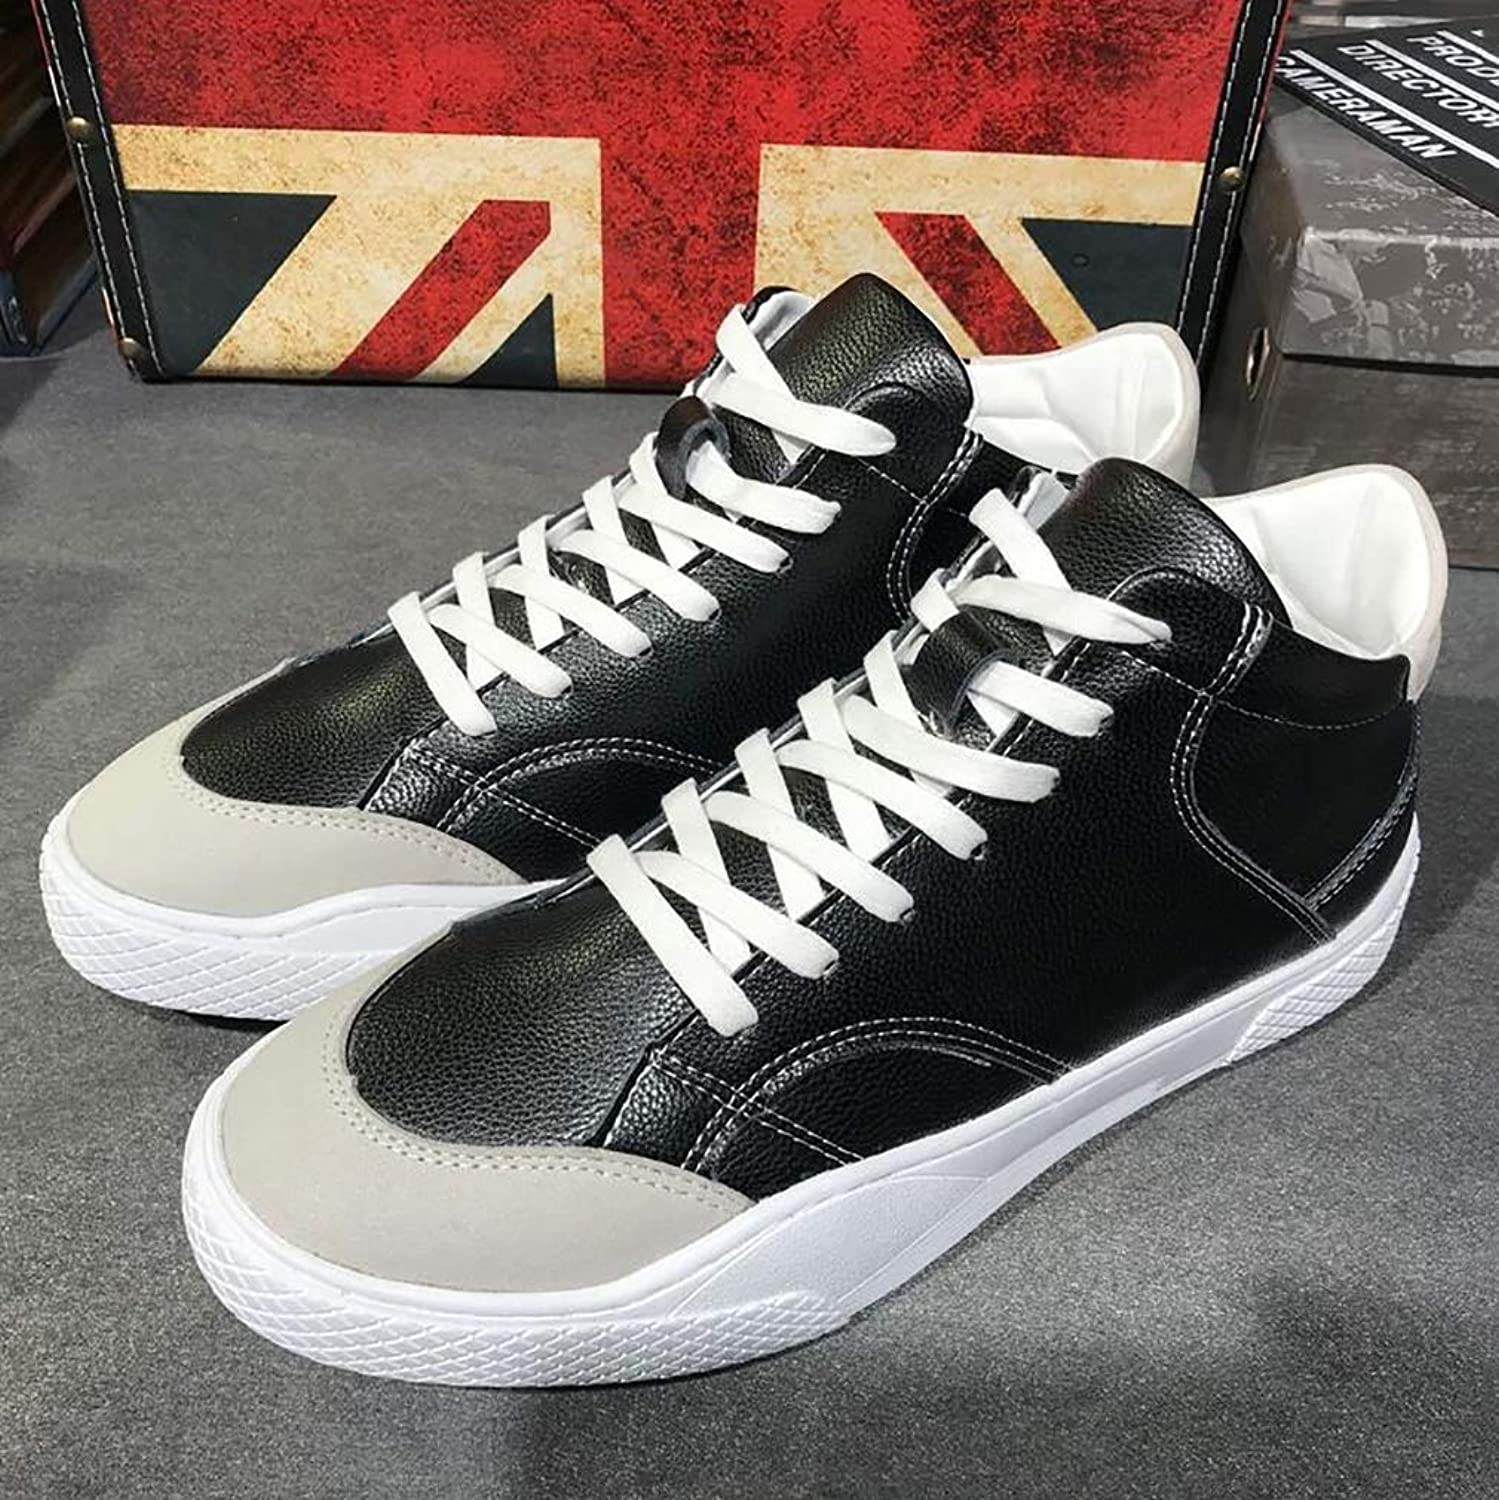 Men's Casual shoes,Spring Fall Leather shoes, High-top Sneakers, Non Slip shoes, Flat Lace-up shoes White Red  Black